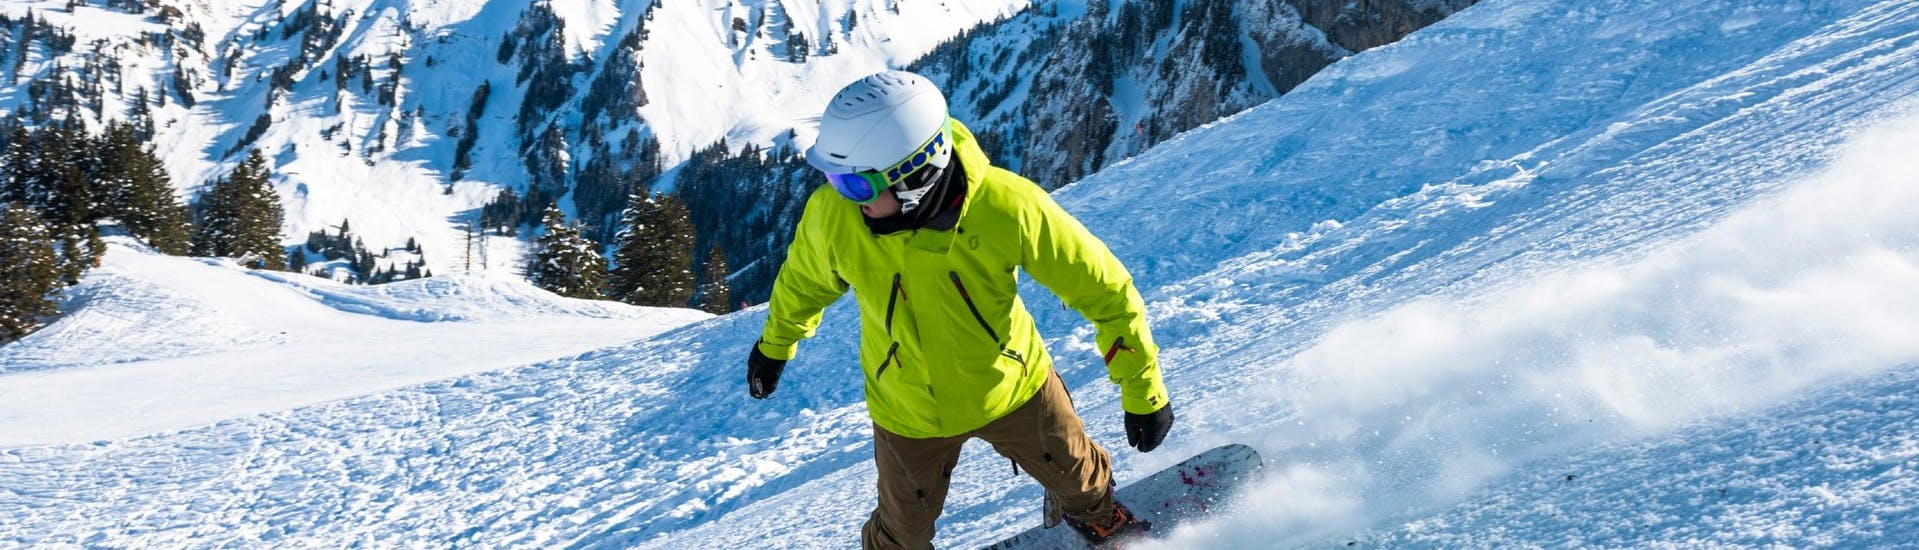 A snowboarder is going down a slope with confidence thanks to his Snowboarding Lessons (6-15 years) - 1 day with the swiss ski school Charmey.